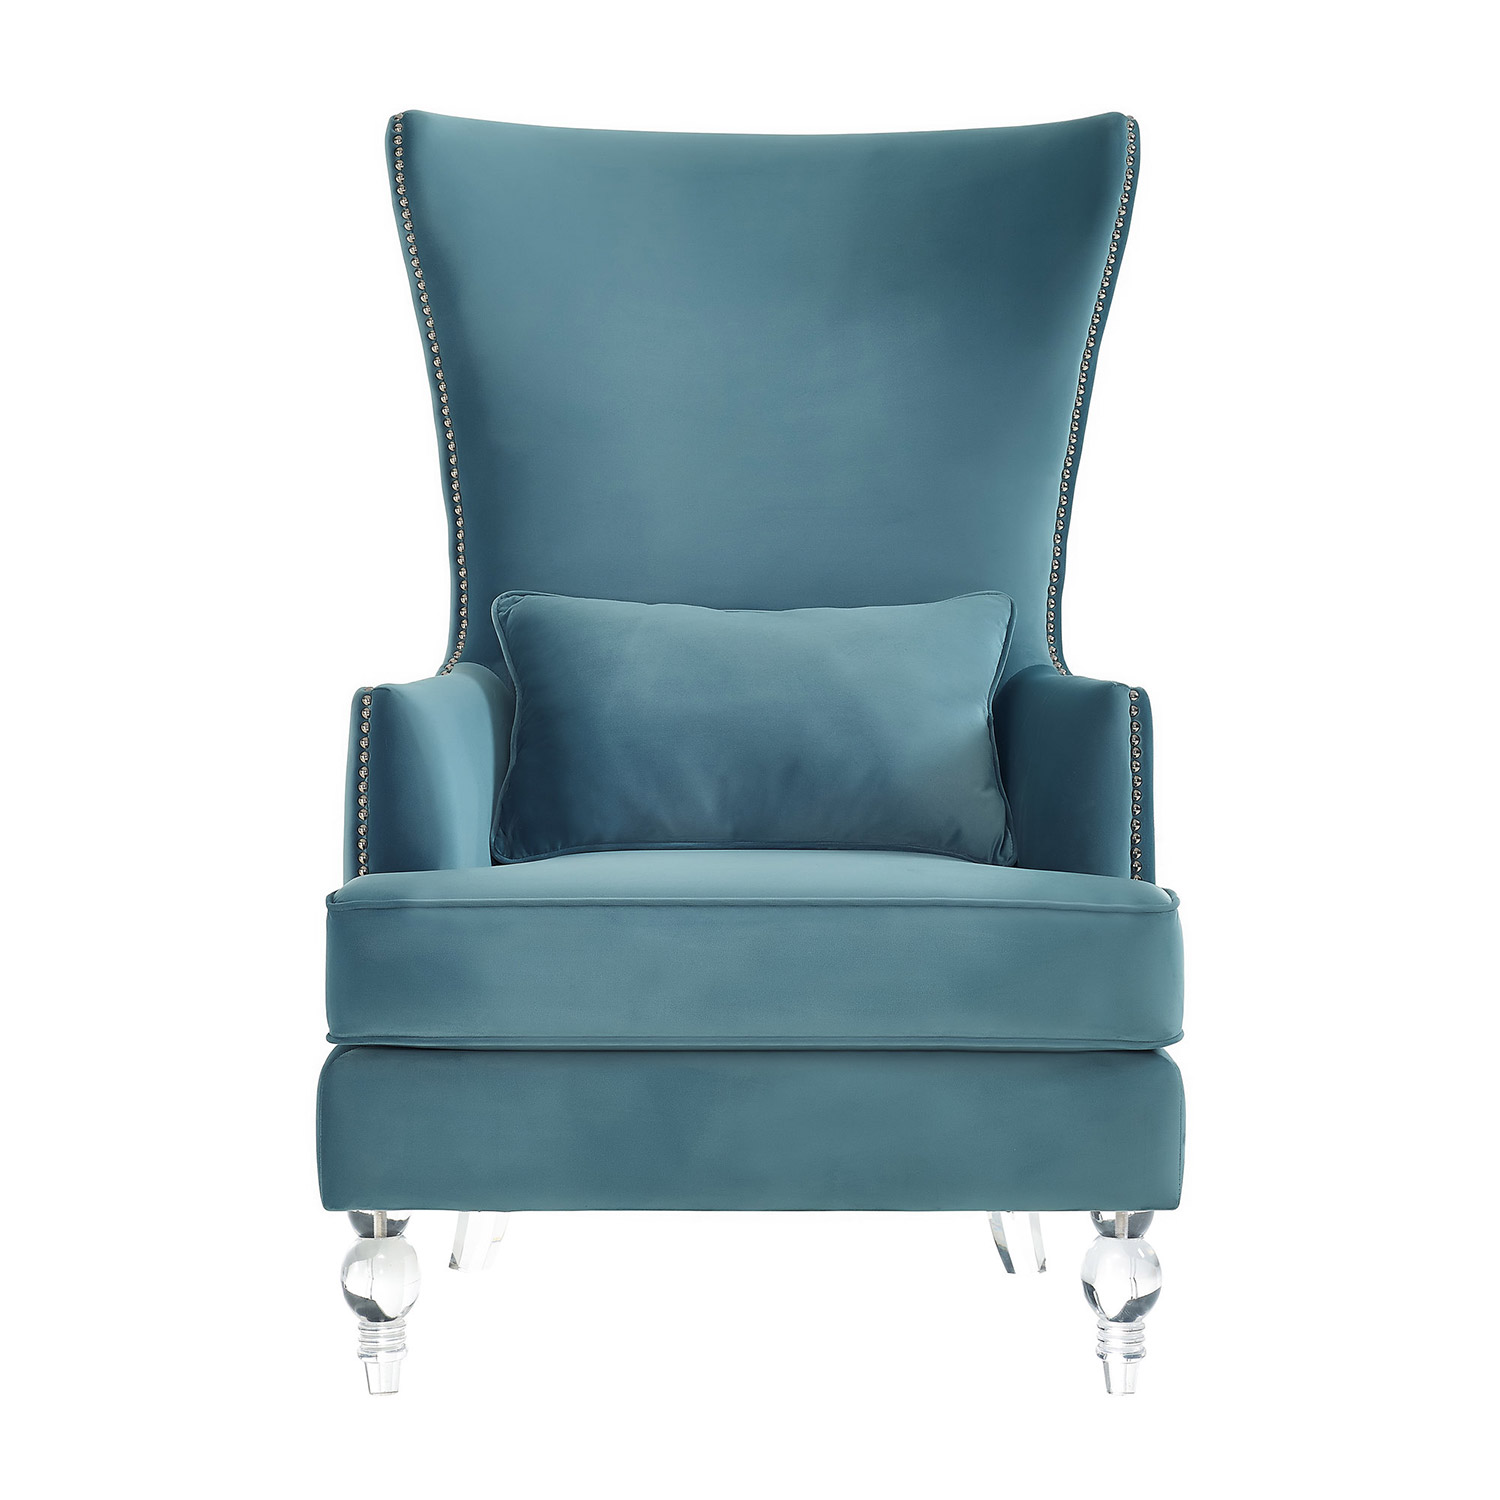 TOV Furniture Bristol Chair with Lucite Legs Sea Blue A139 at